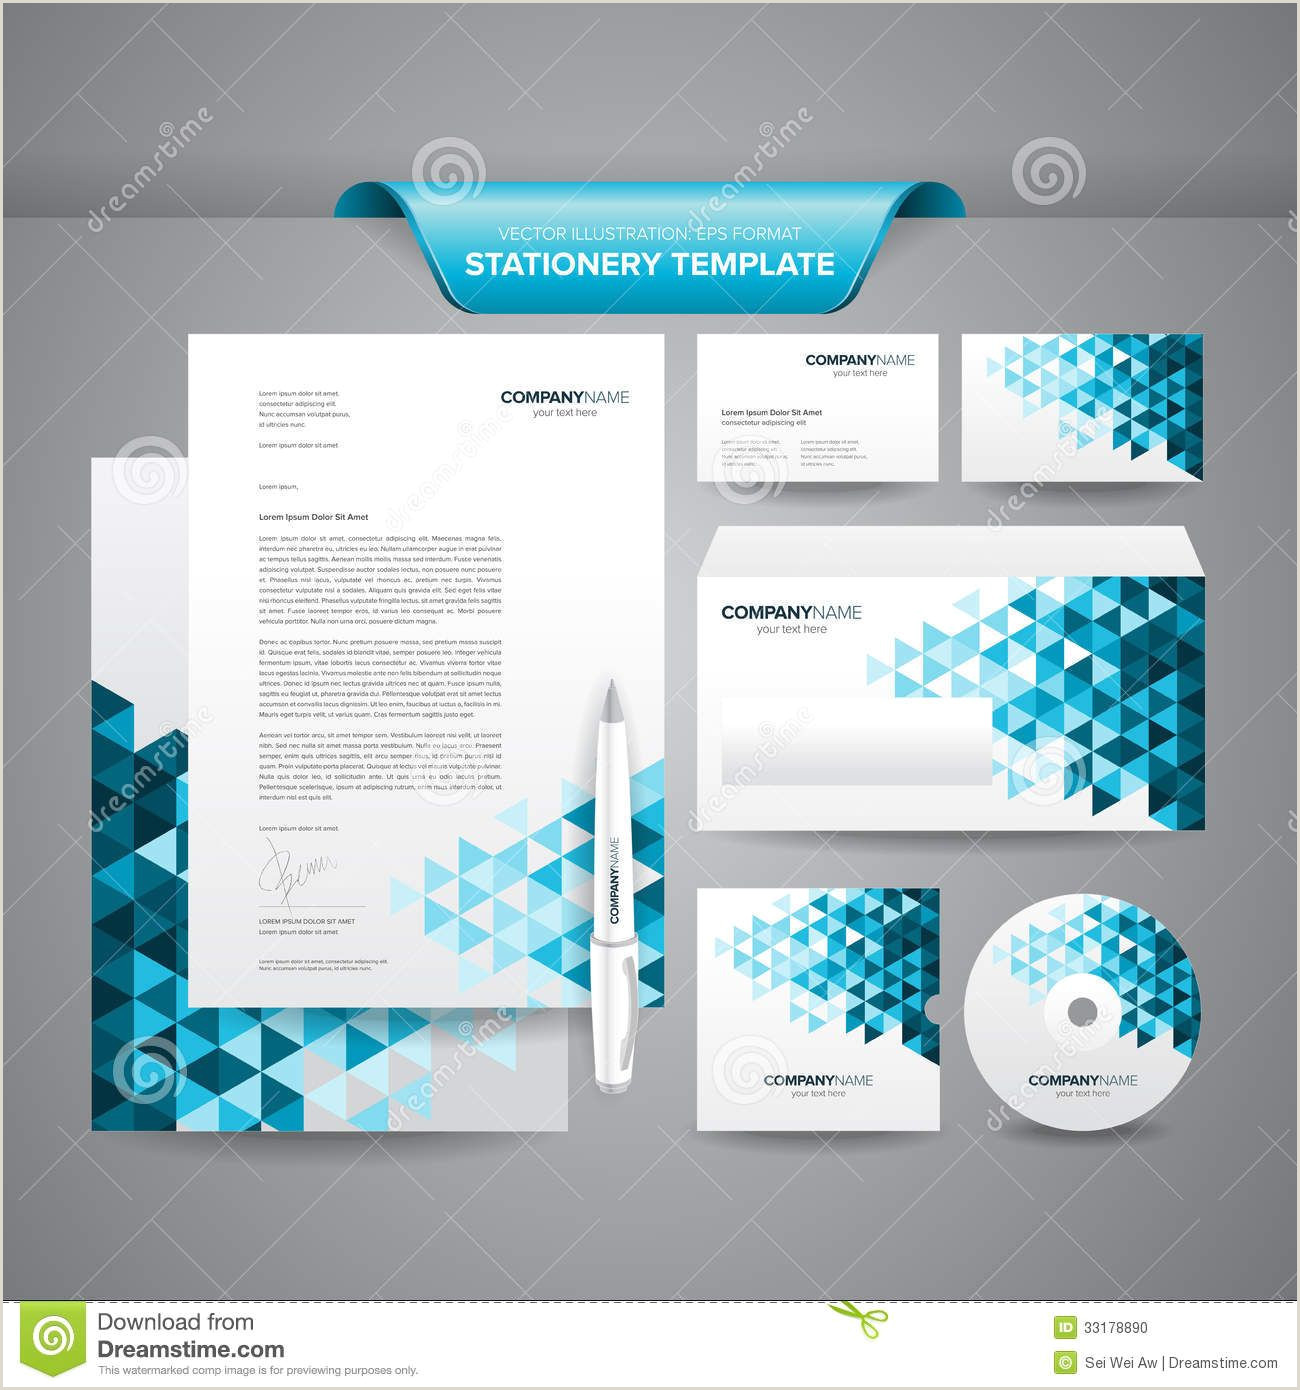 Business Card And Stationery Design Pin On Business Stationery